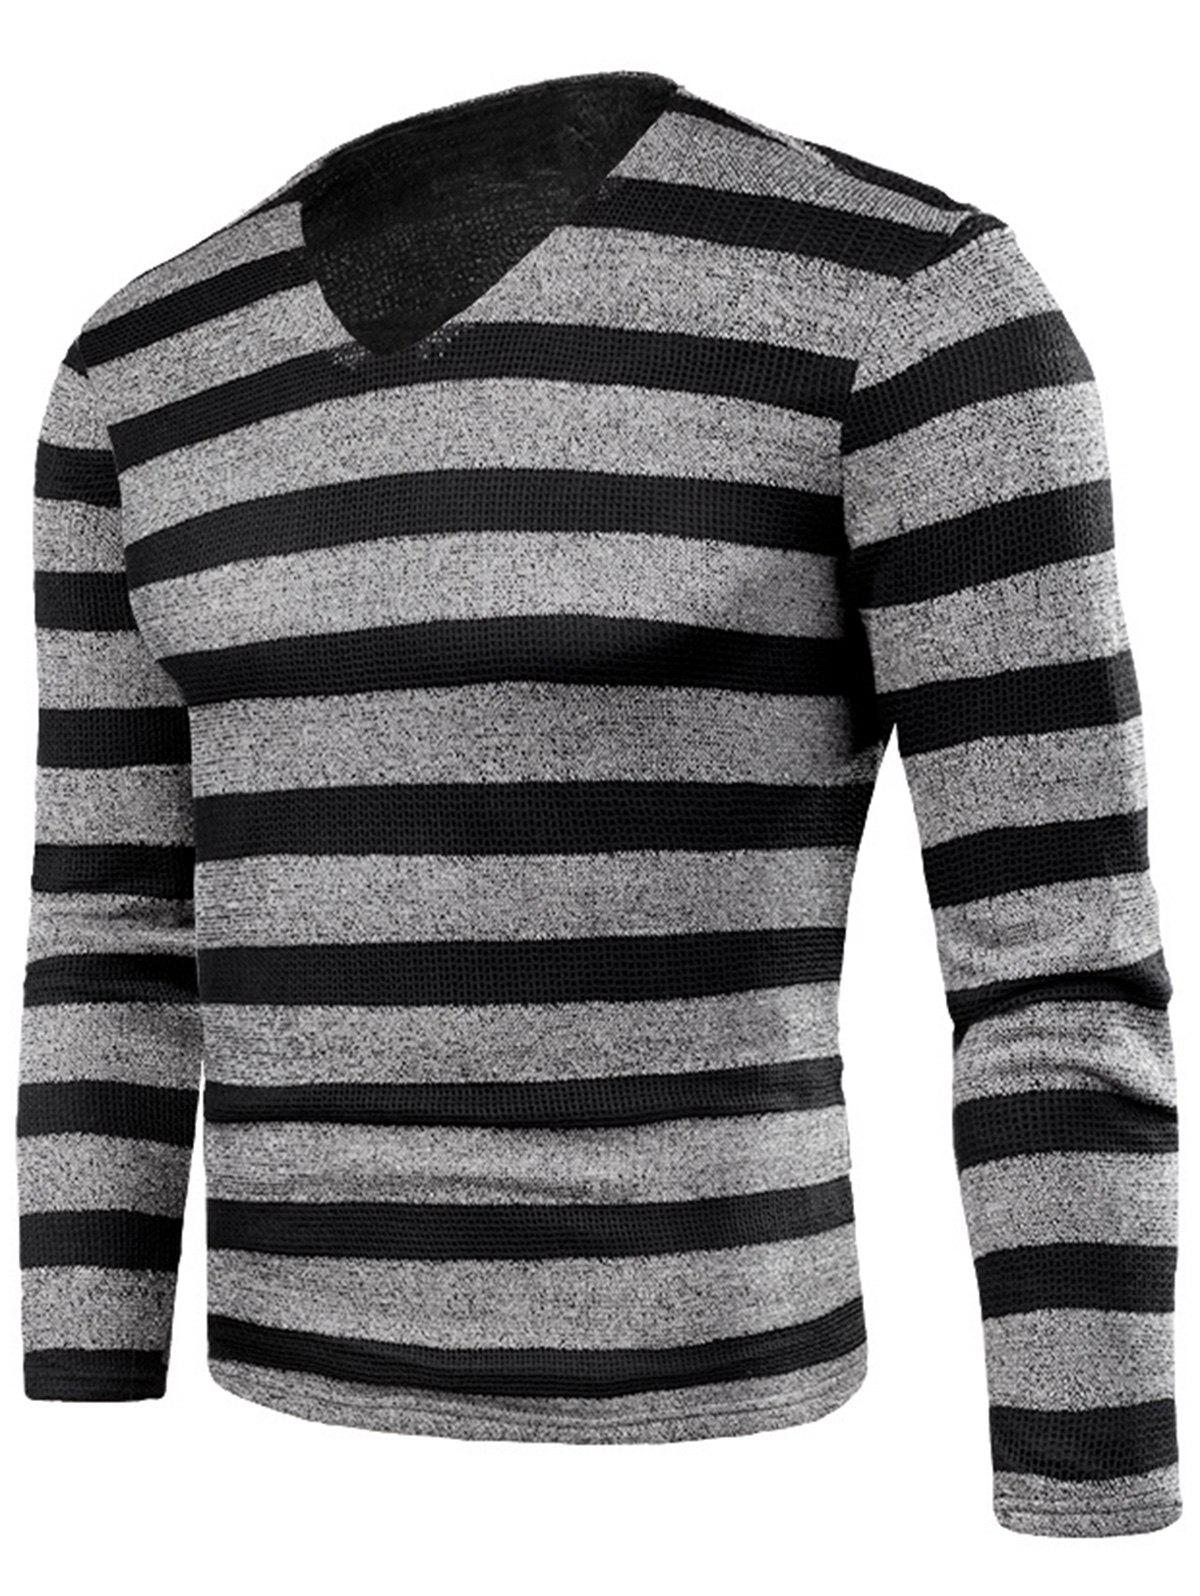 V Neck Stripe Fleece Knitted T-shirt - GRAY 5XL